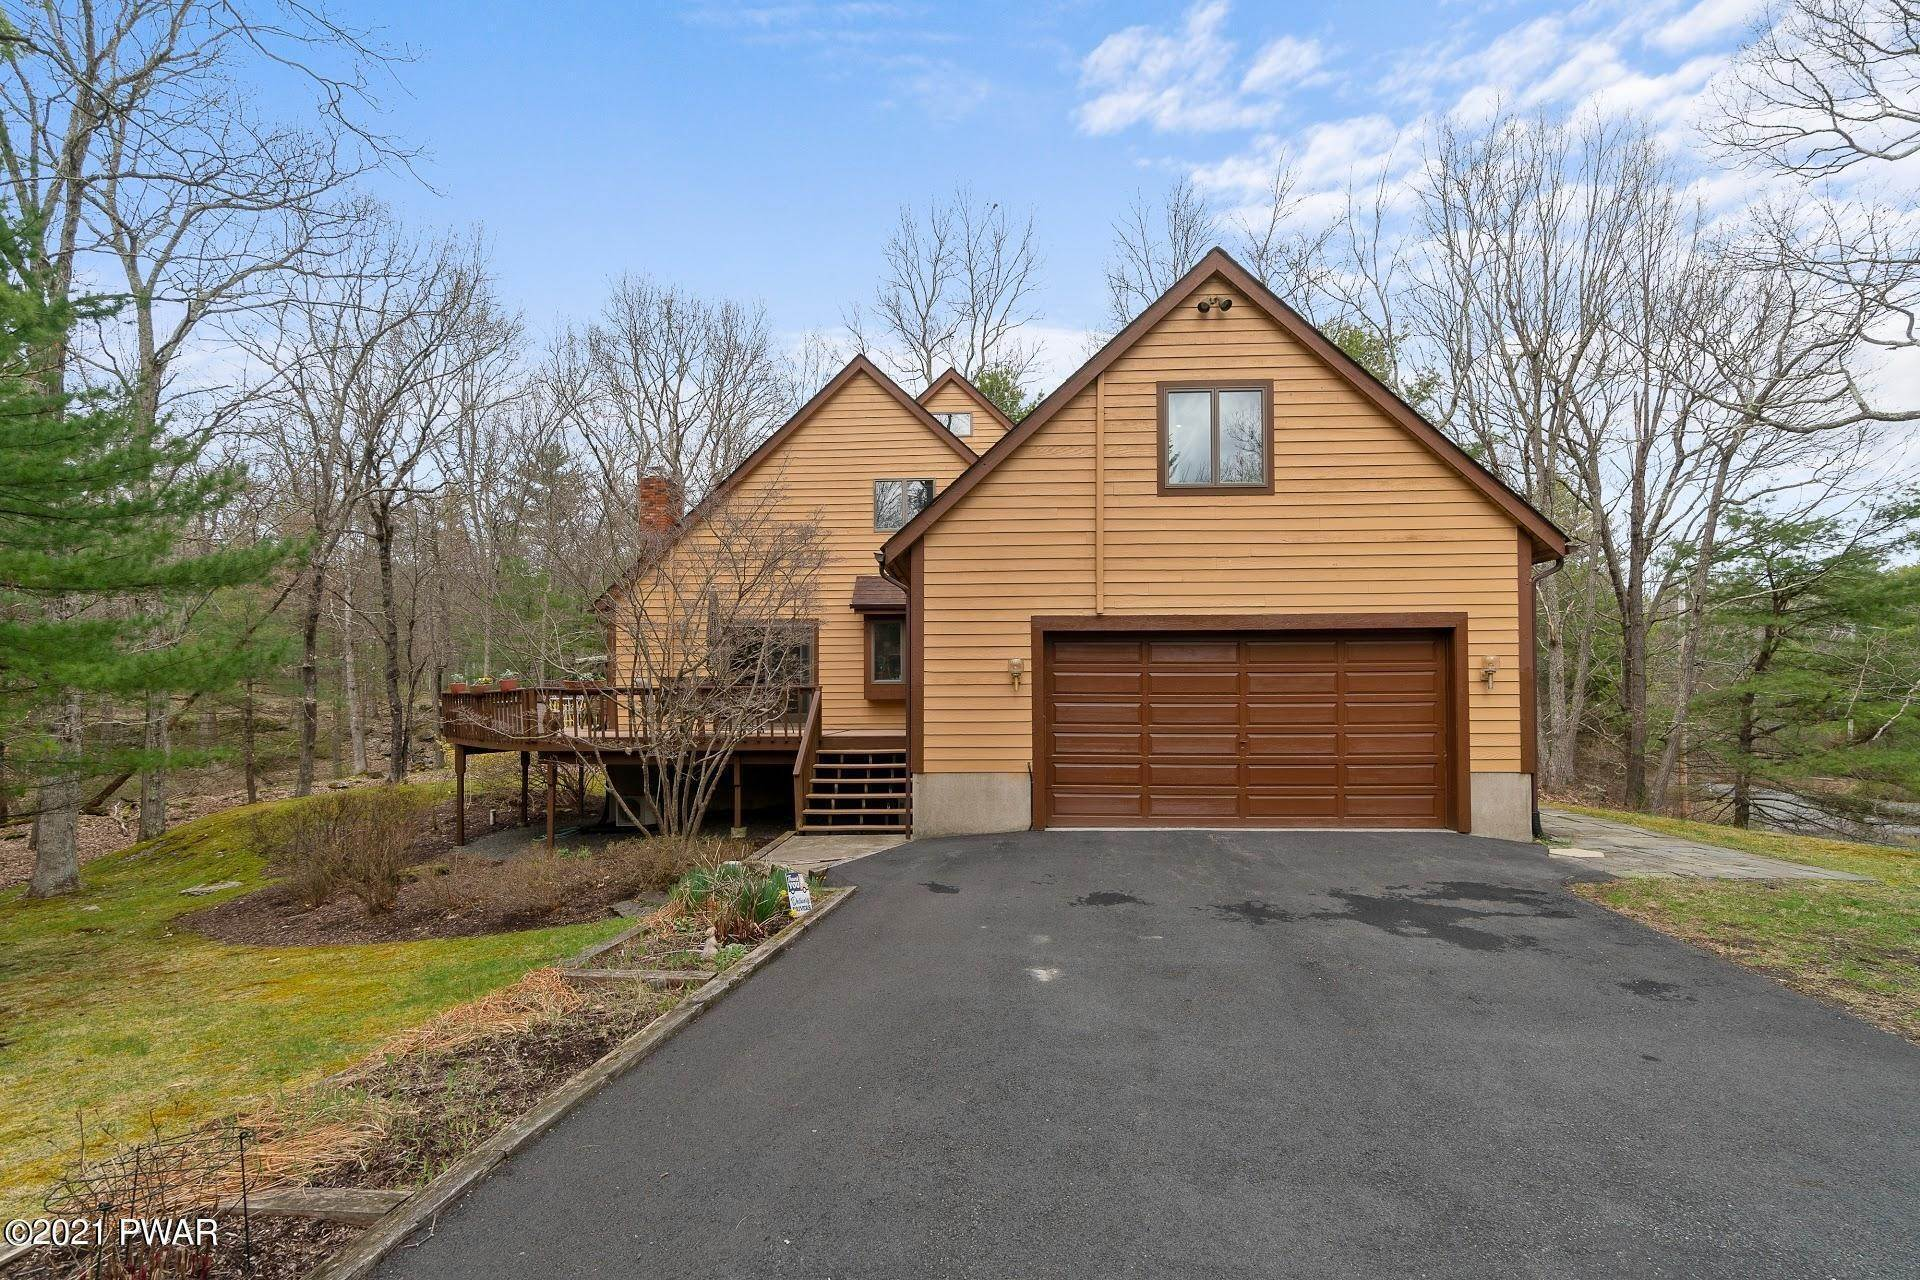 58. Single Family Homes for Sale at 103 Vesuvius Ln Milford, Pennsylvania 18337 United States